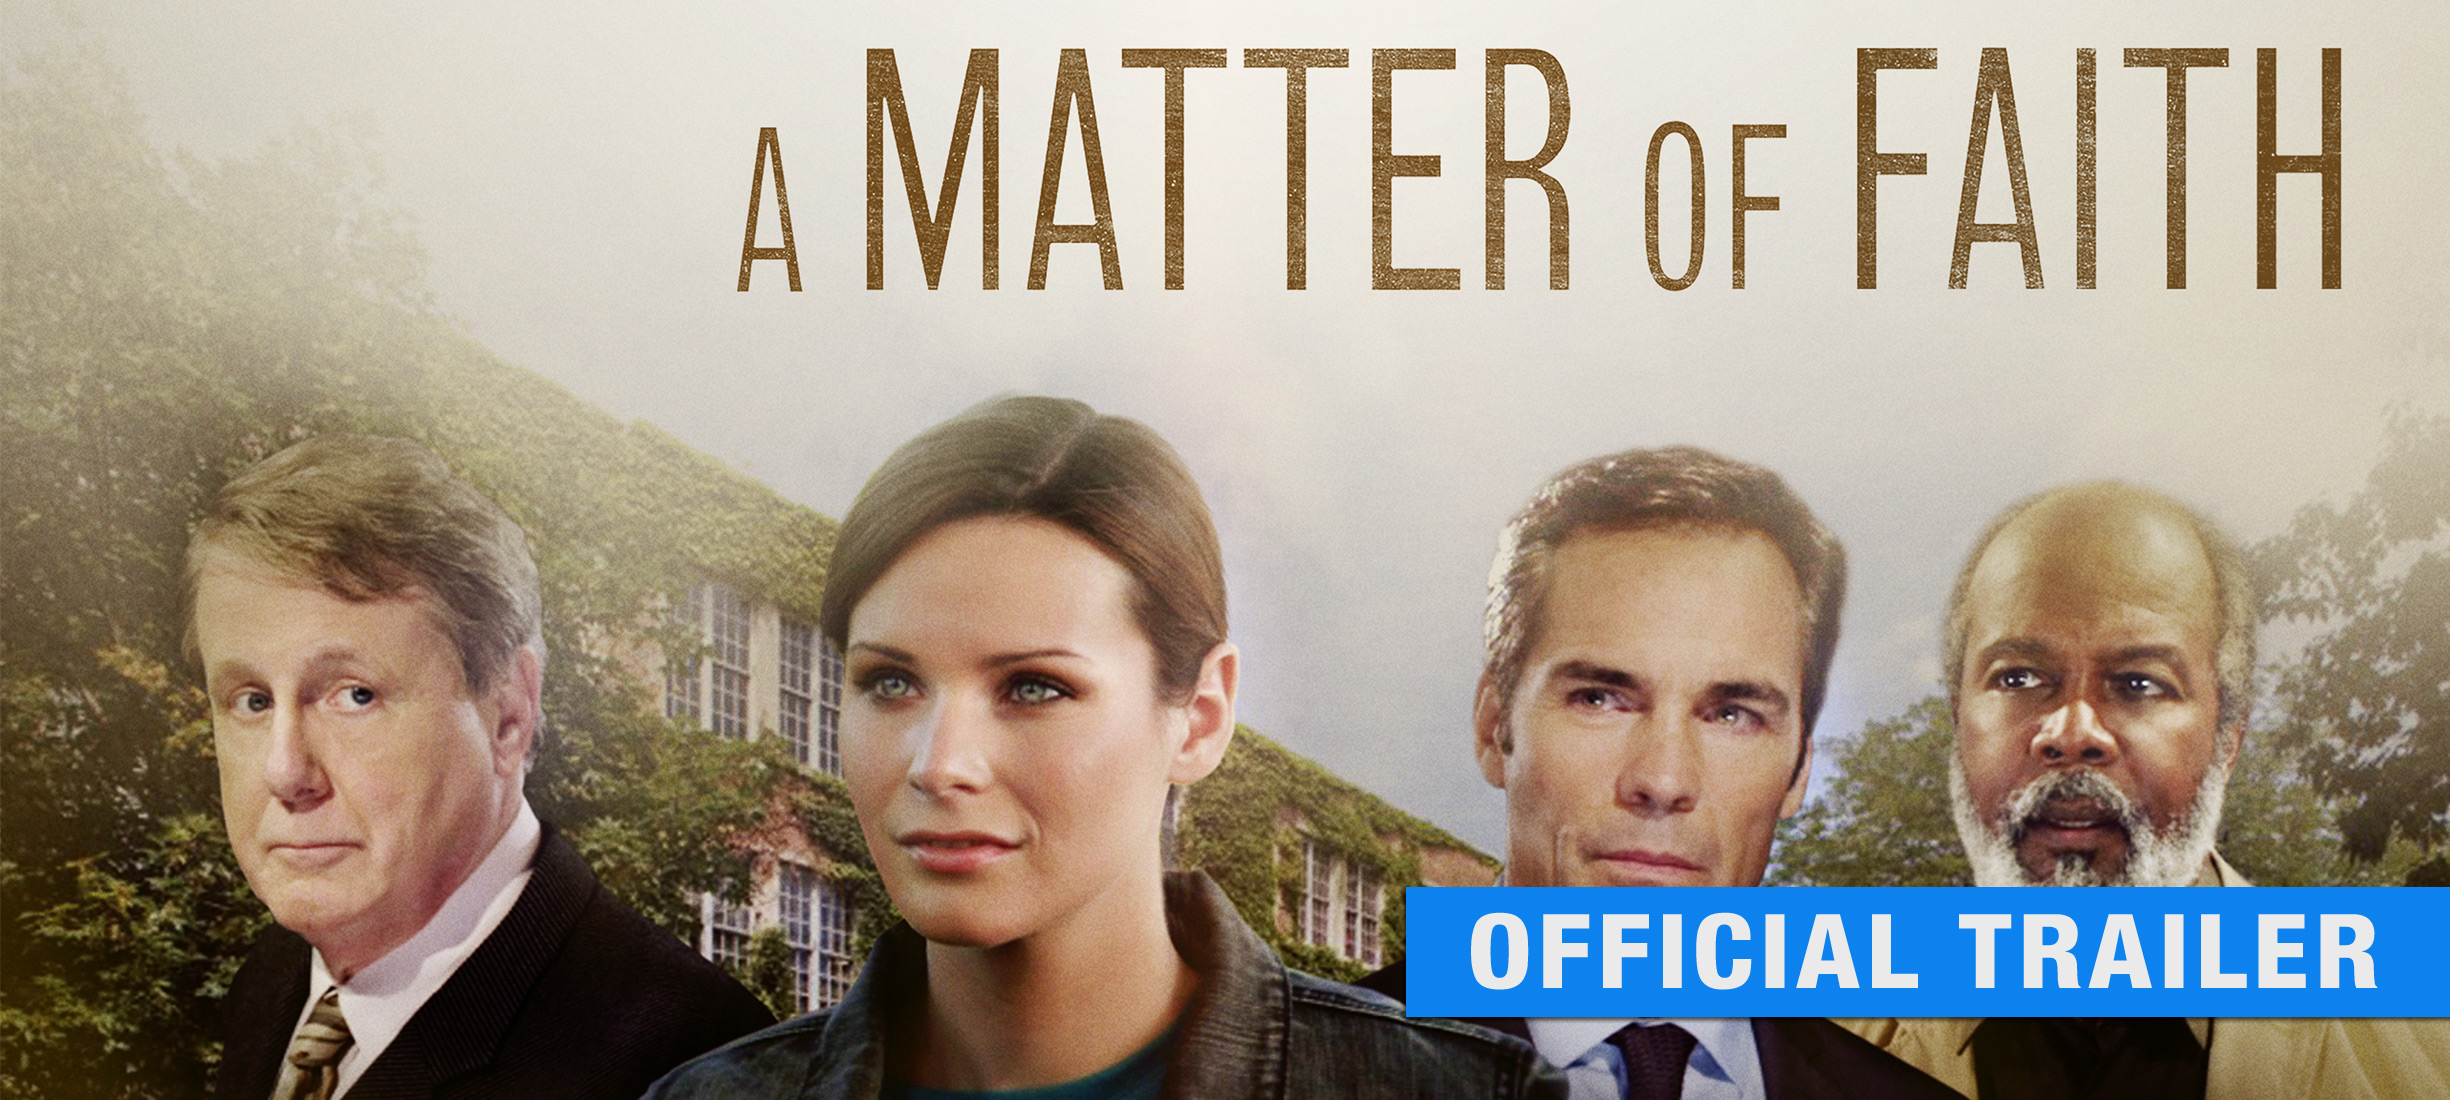 A Matter of Faith: Trailer